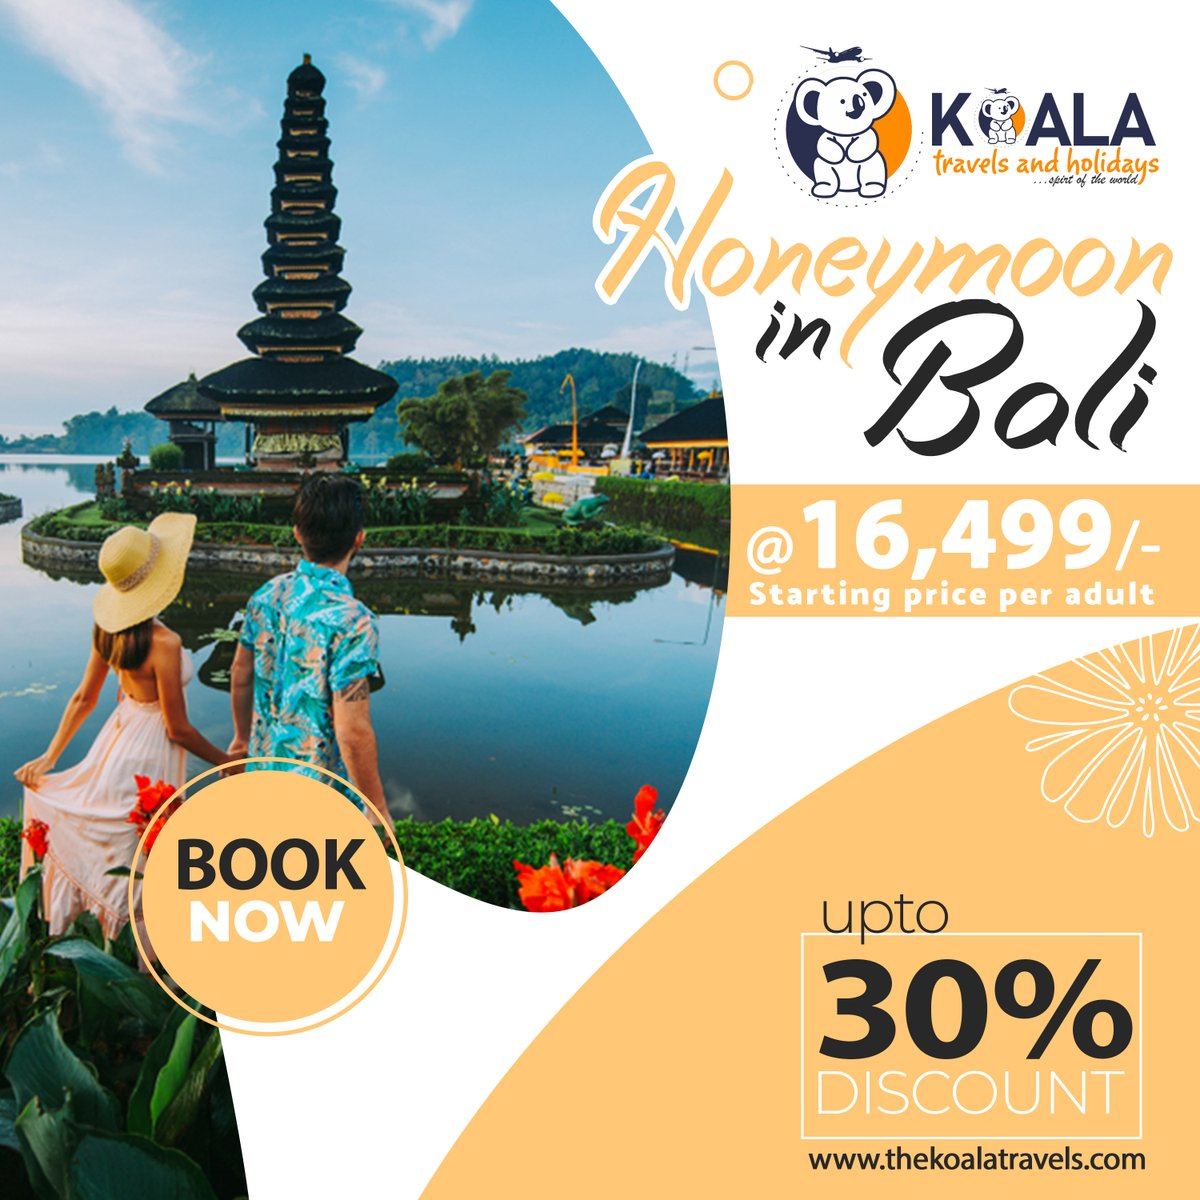 Travel To This Paradise Place, With An Abundance Gift of nature, #Bali is known for its alluring arts & surely it will leave mesmerized. Our Bali Packages Are The One Stop For Your Every Need.  #thekoalatravels #holidaypackages #tourpackages #travelpackages #honeymoonpackages<br>http://pic.twitter.com/Rp561qGRhv